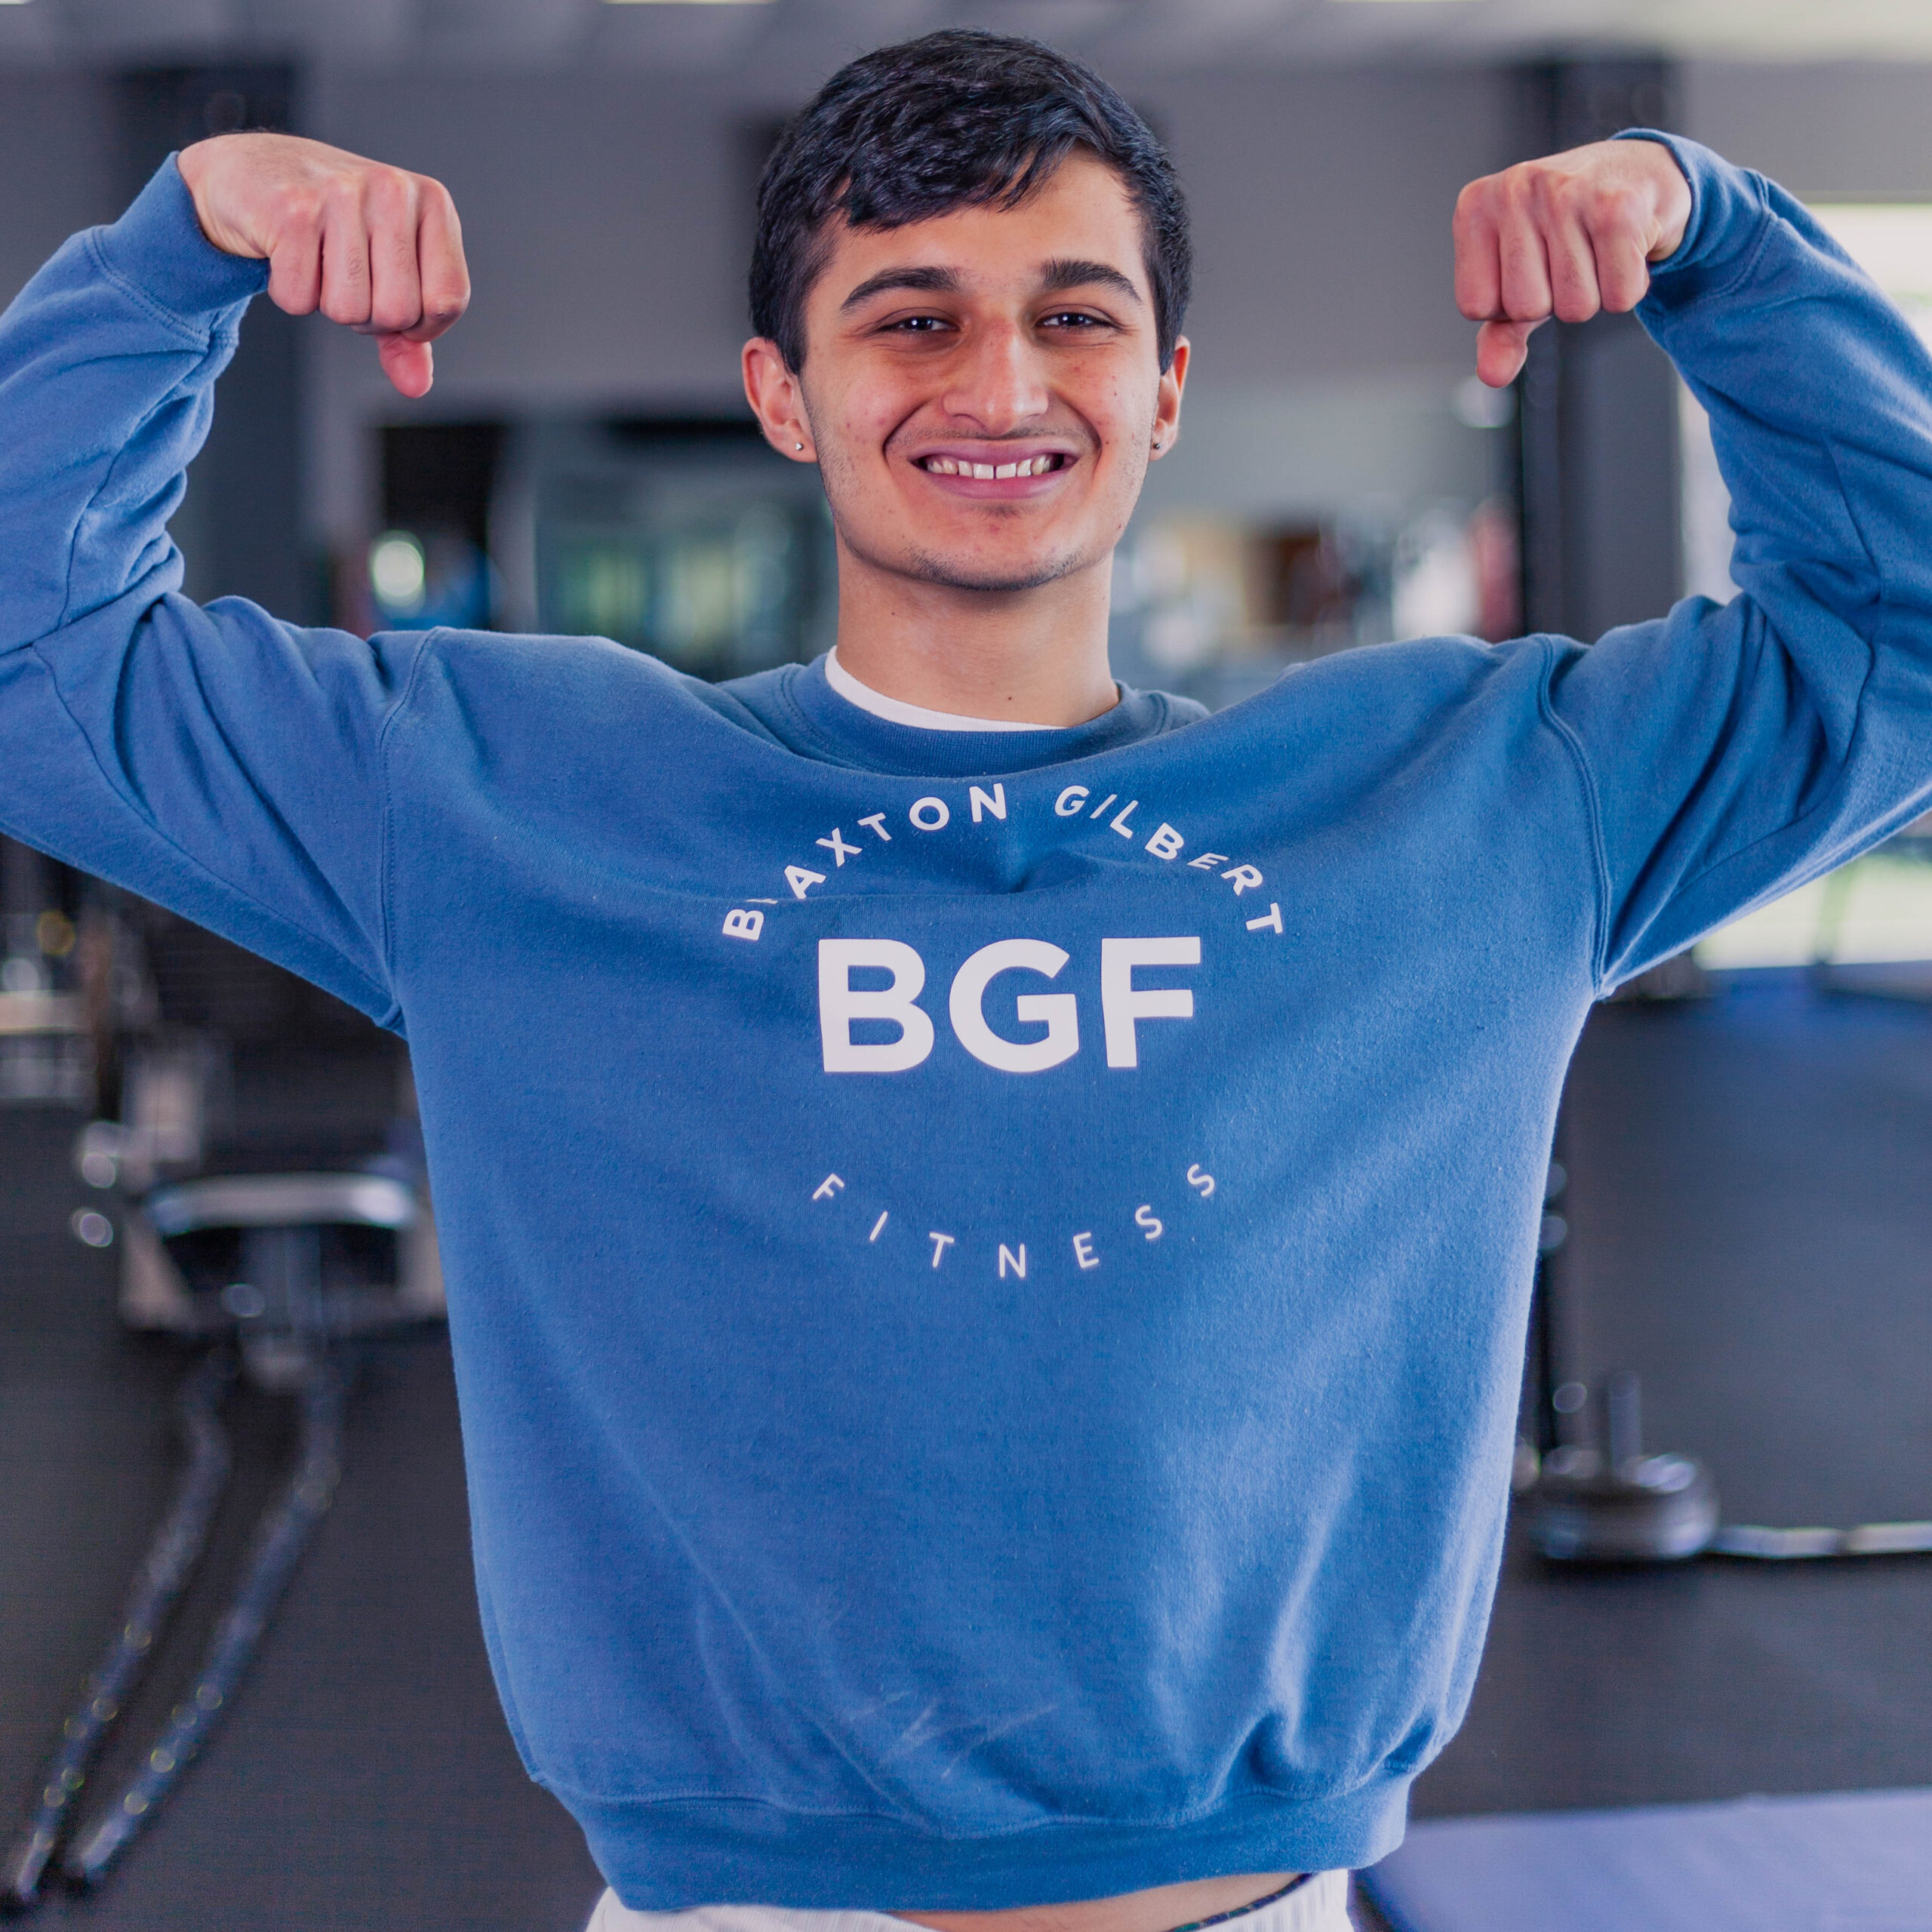 Young personal training in Mobile, Alabama can be found at Braxton Gilbert Fitness.